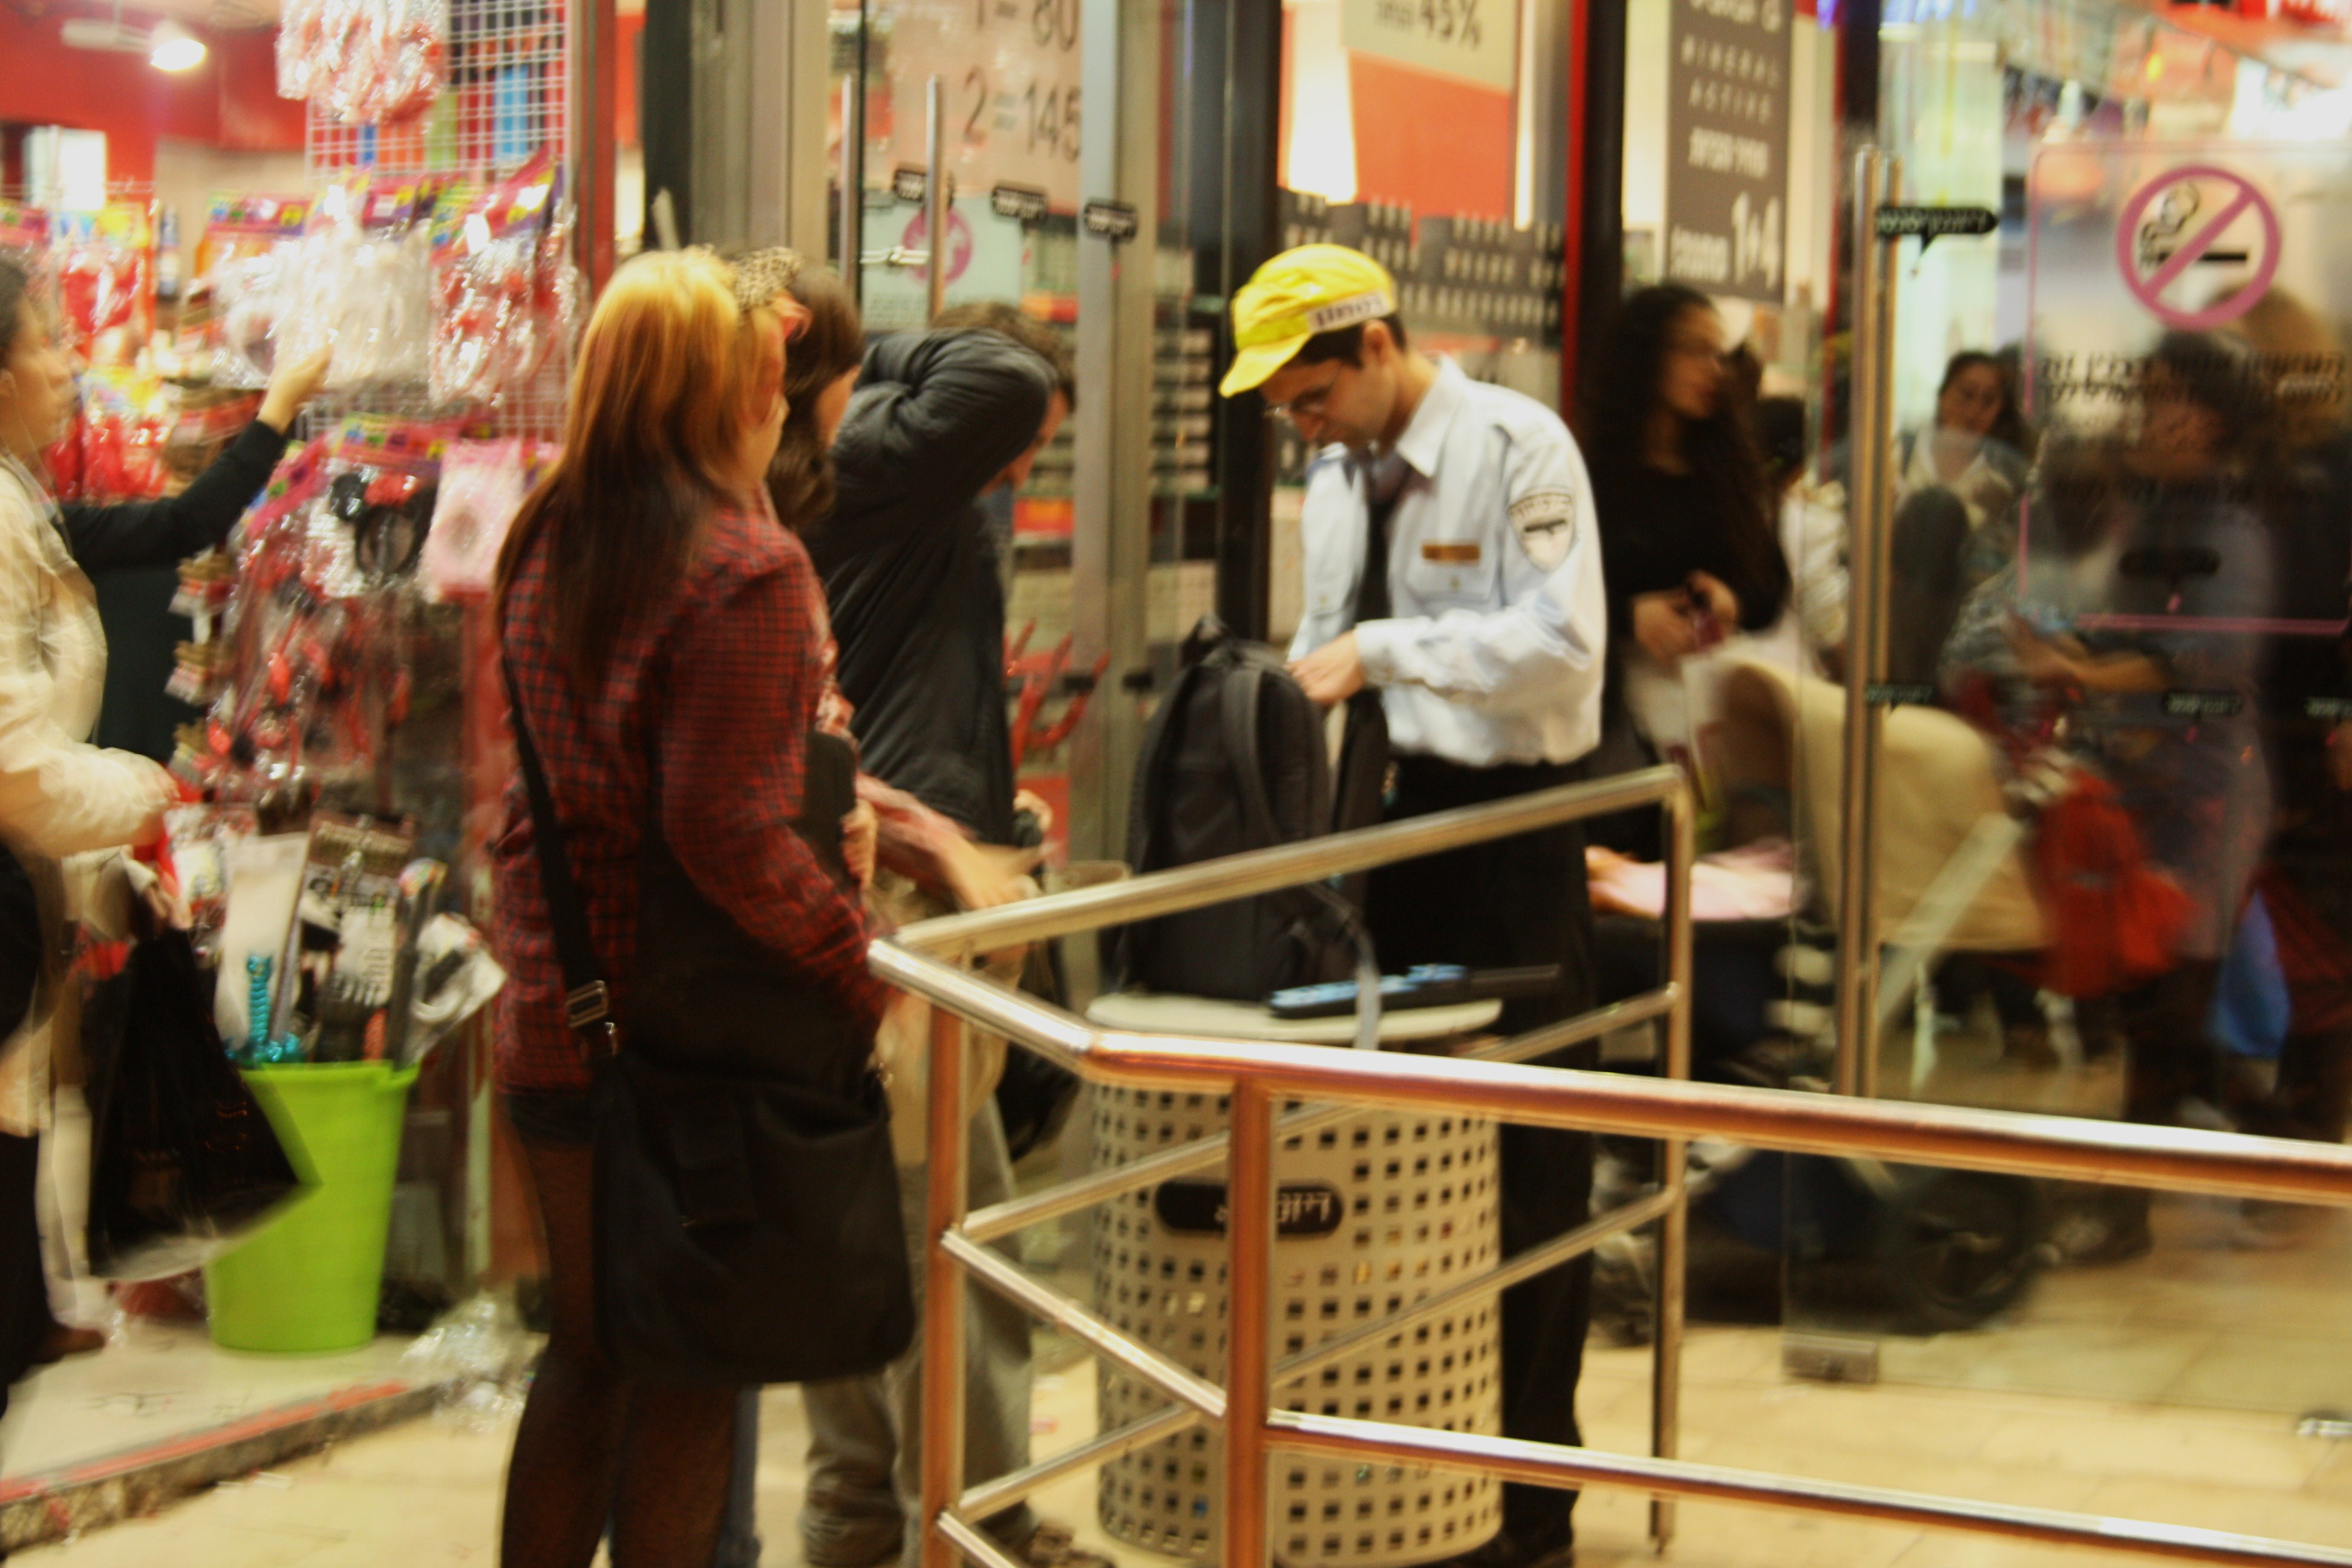 Shoppers pass through a security check at Dizengoff Center in Tel Aviv.